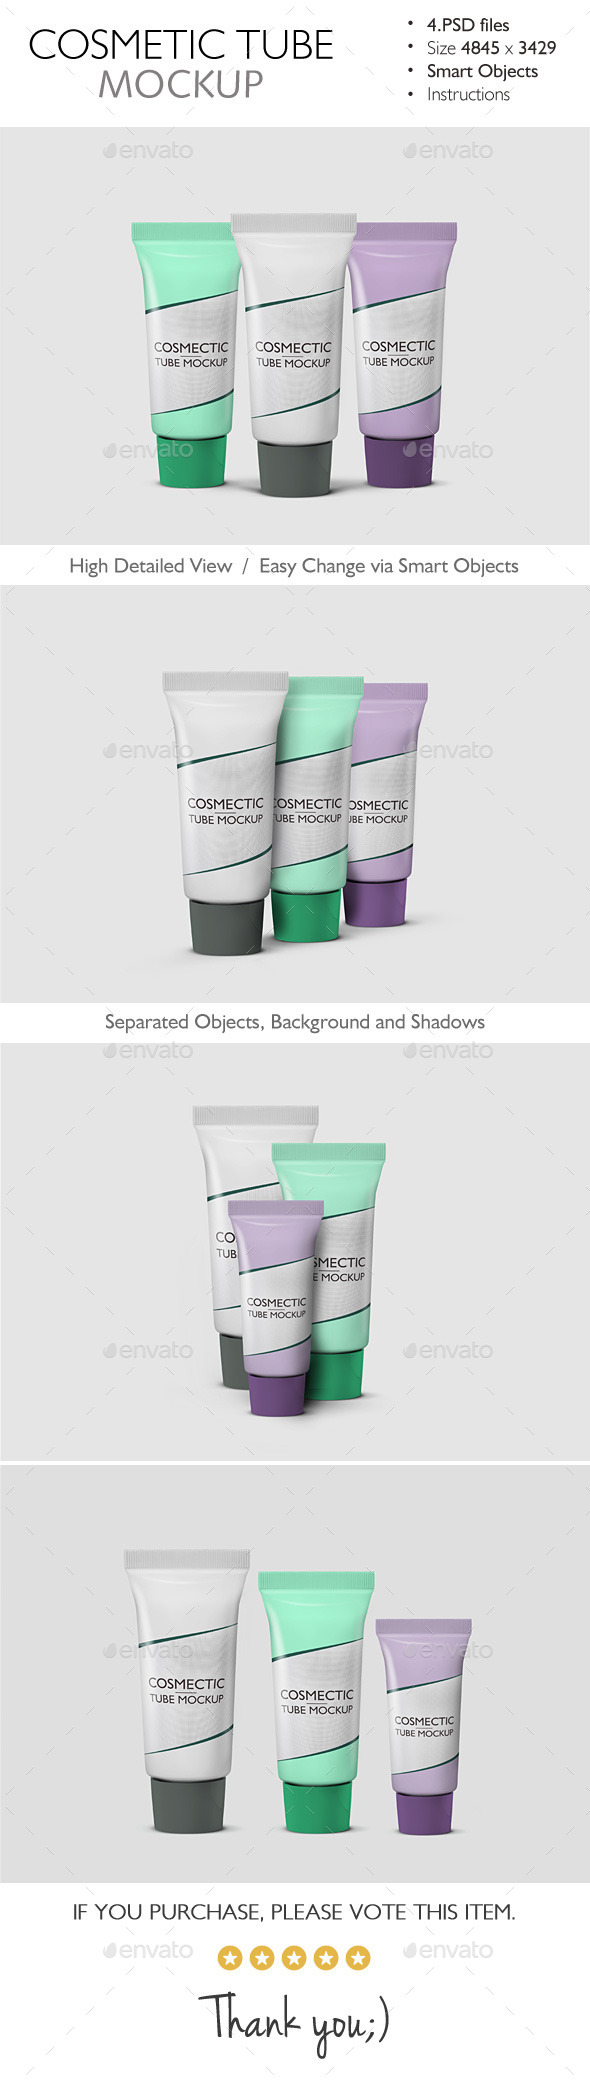 Cosmetic Tube Mockup - Beauty Packaging